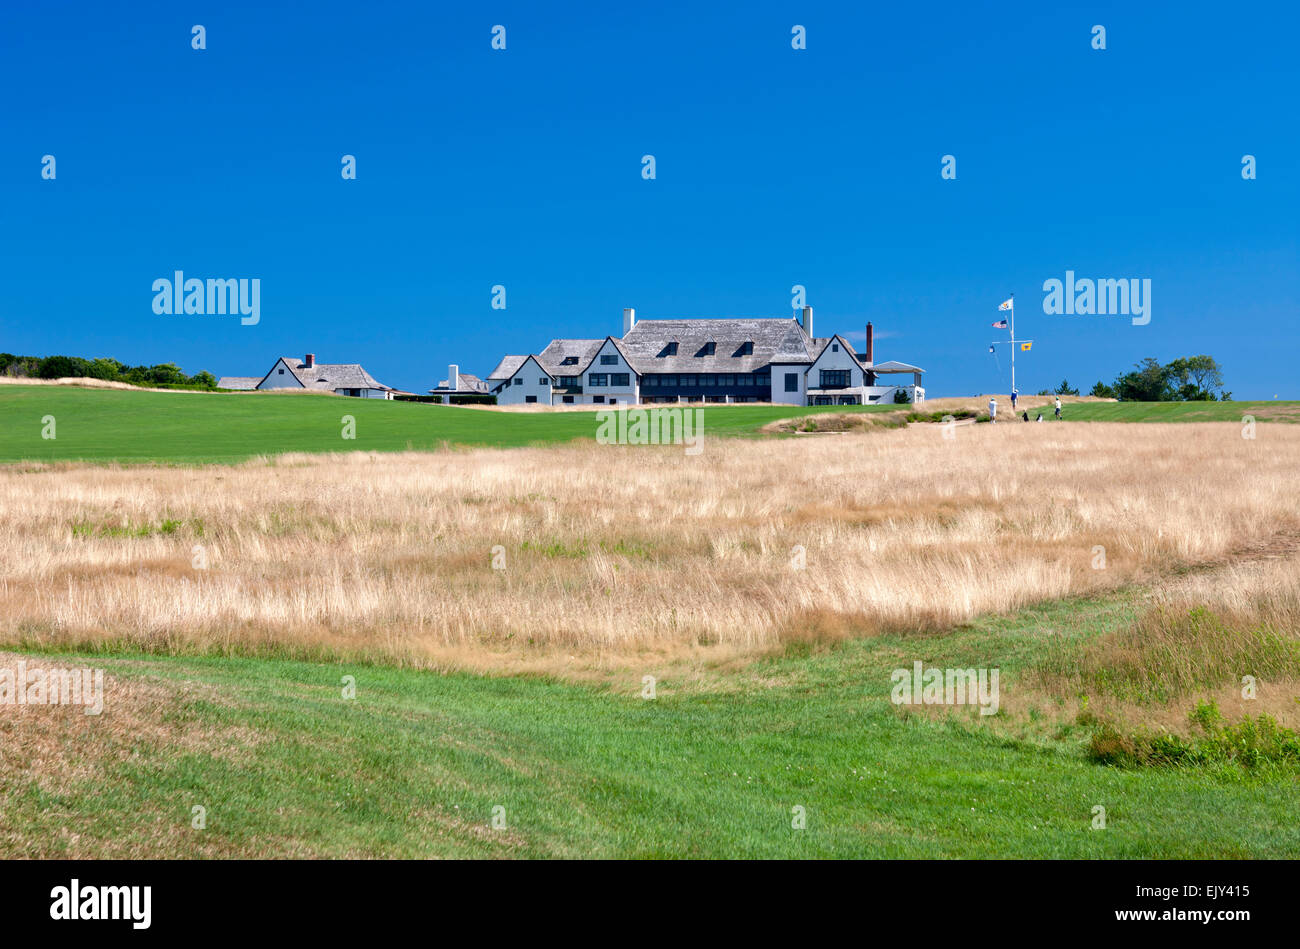 CLUBHOUSE MAIDSTONE PRIVATE CLUB EAST HAMPTON LONG ISLAND NEW YORK STATE USA - Stock Image